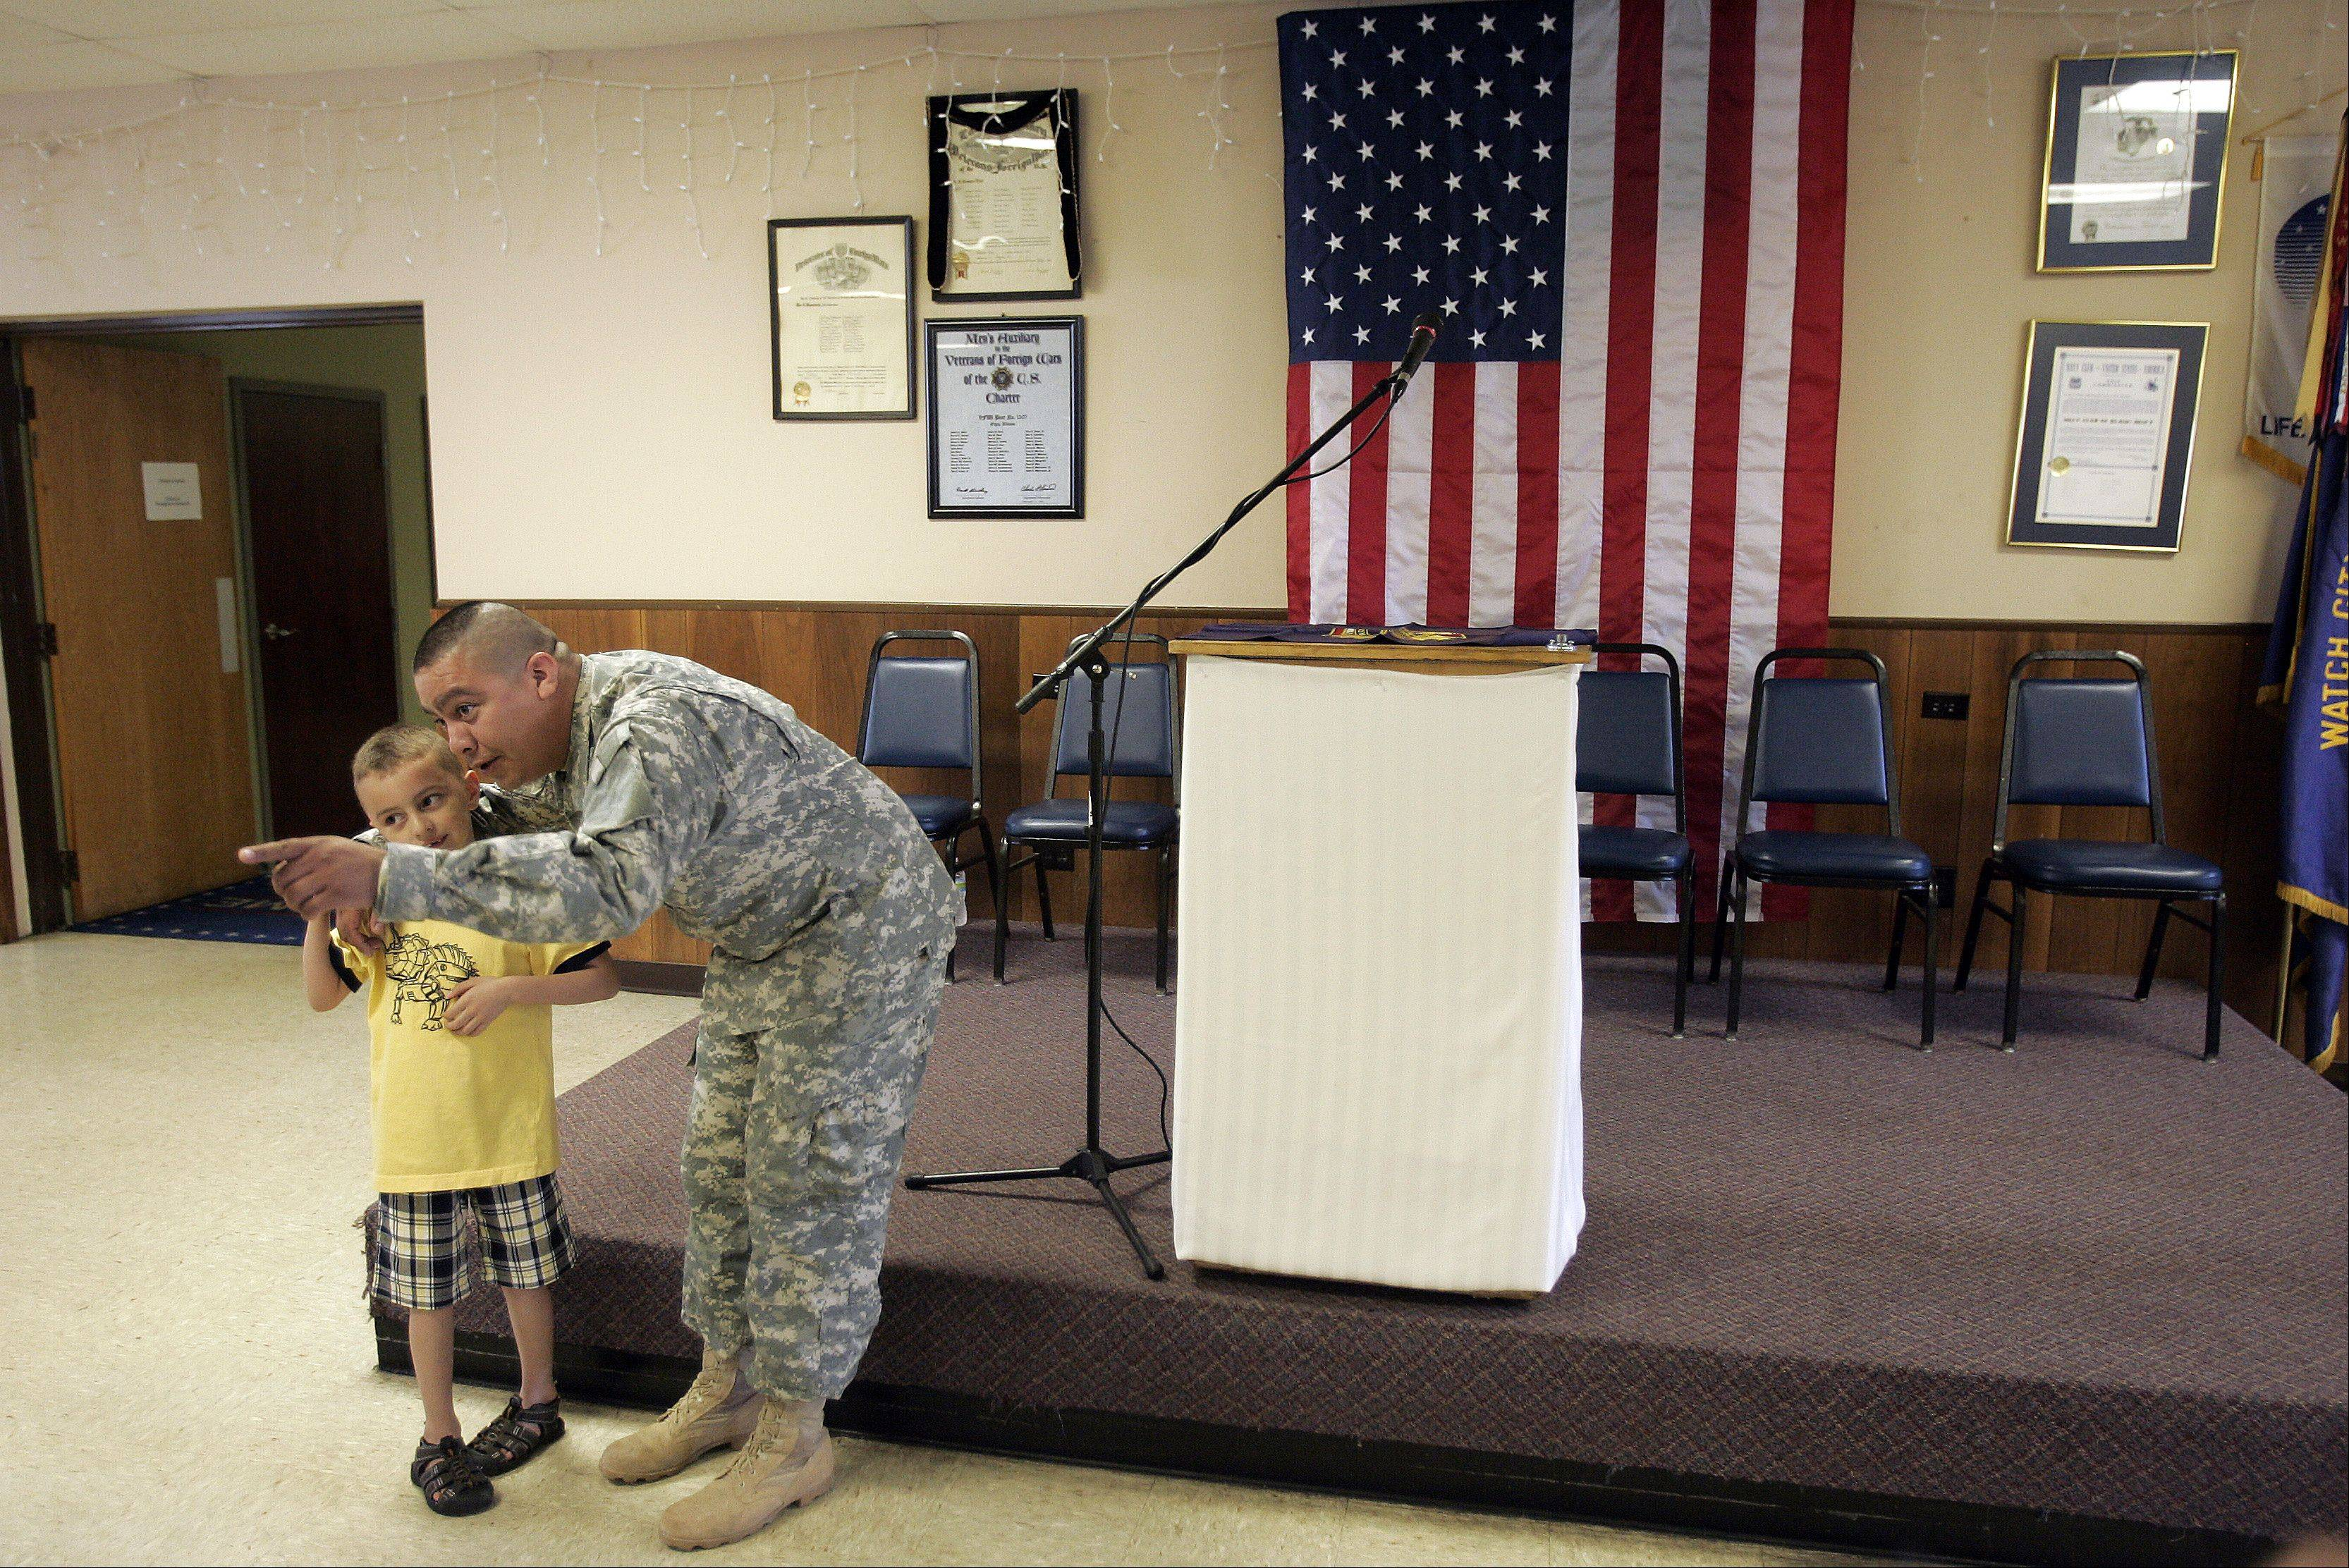 Retired U.S. Army Sgt. Michael Griffin shares a moment with his son Michael Griffin II, 6, after receiving the Army Commendation Medal of Valor Thursday during a celebration at VFW Post 1307 in Elgin.